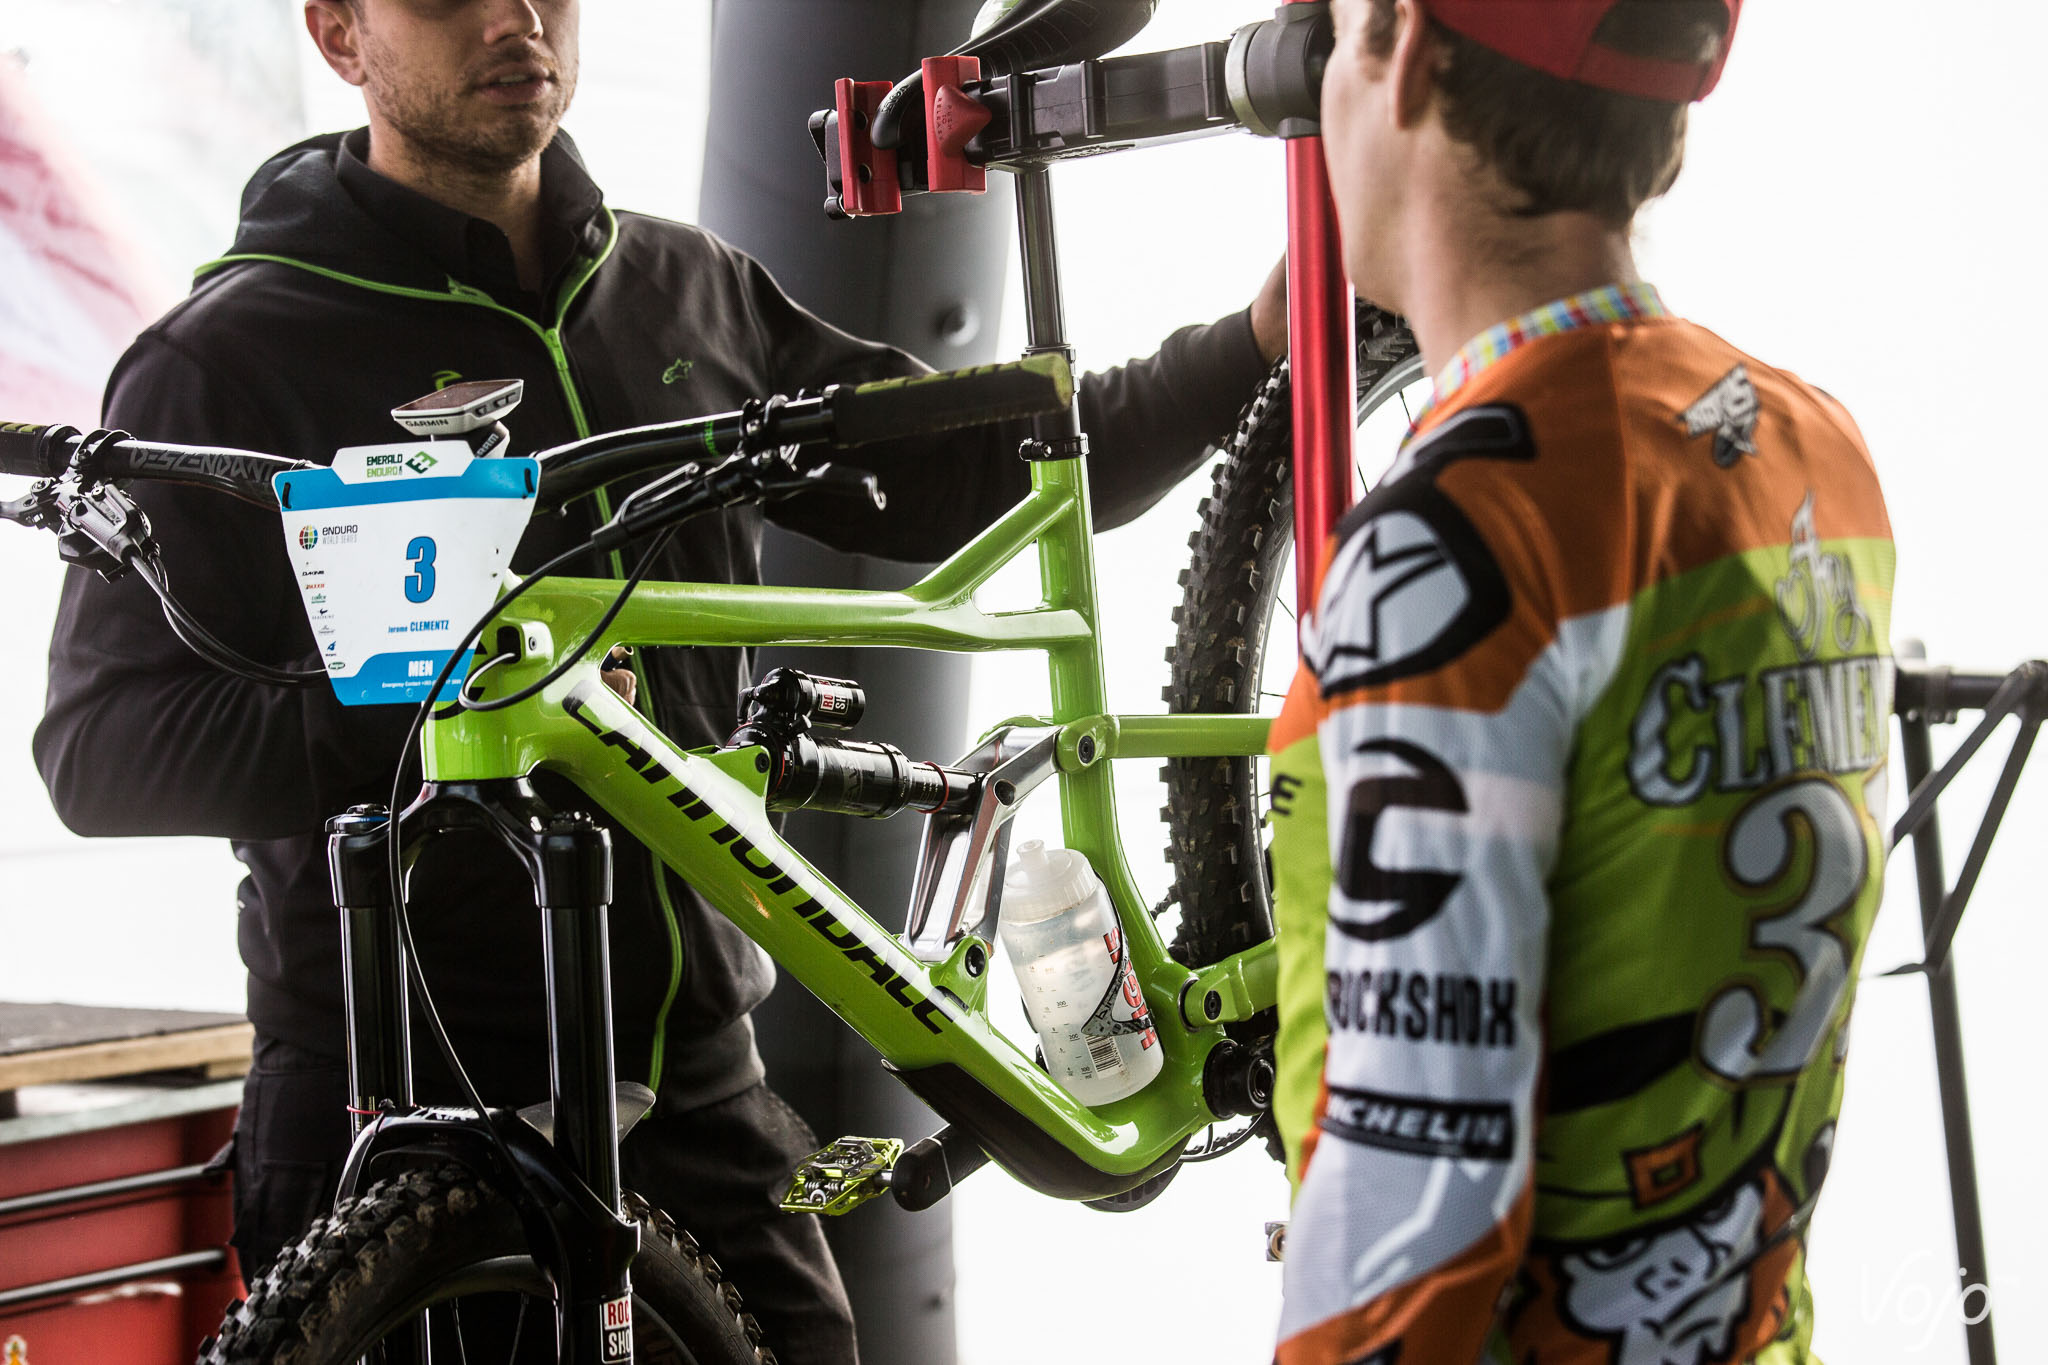 Cannondale_Jekyll_prototype_2017_Jerome_Clementz_Copyright_Reuiller_VojoMag-2